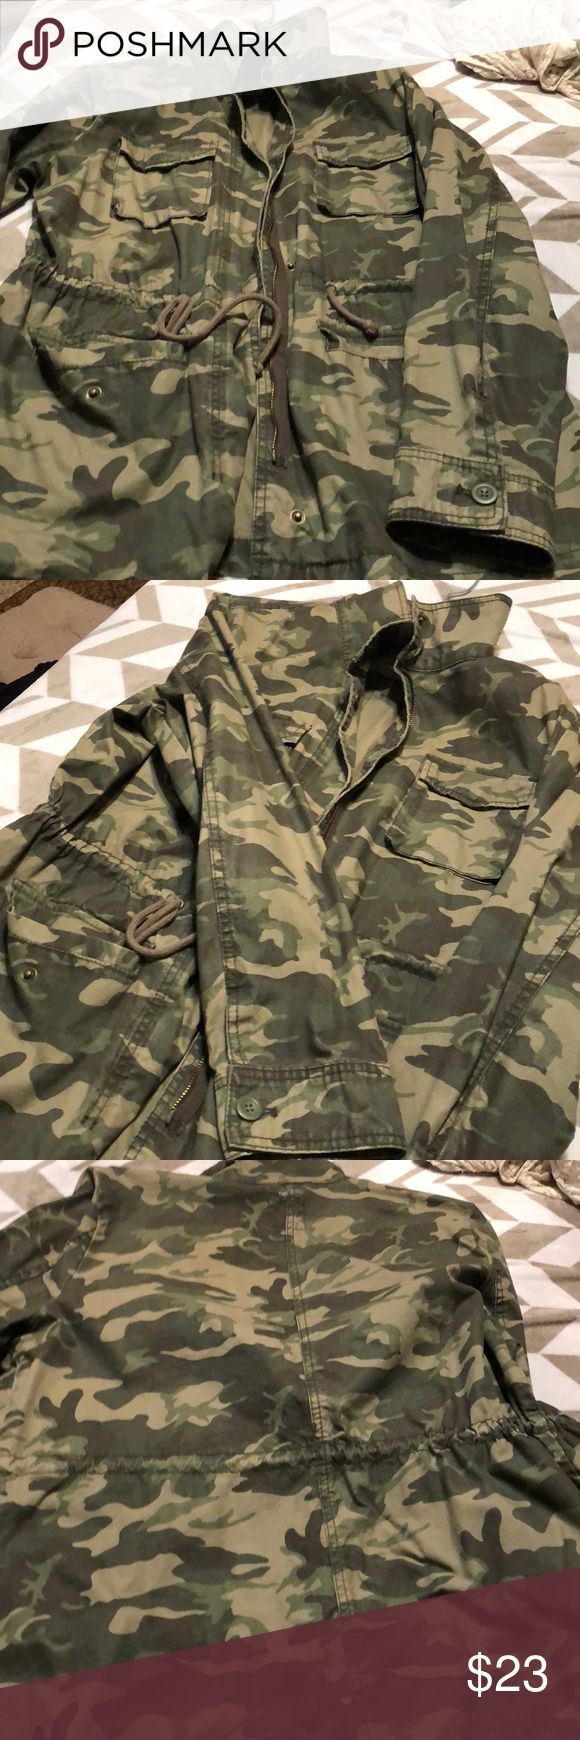 Army Fatigue Jacket Excellent condition. Only wore a few times. Old Navy Jackets & Coats Utility Jackets